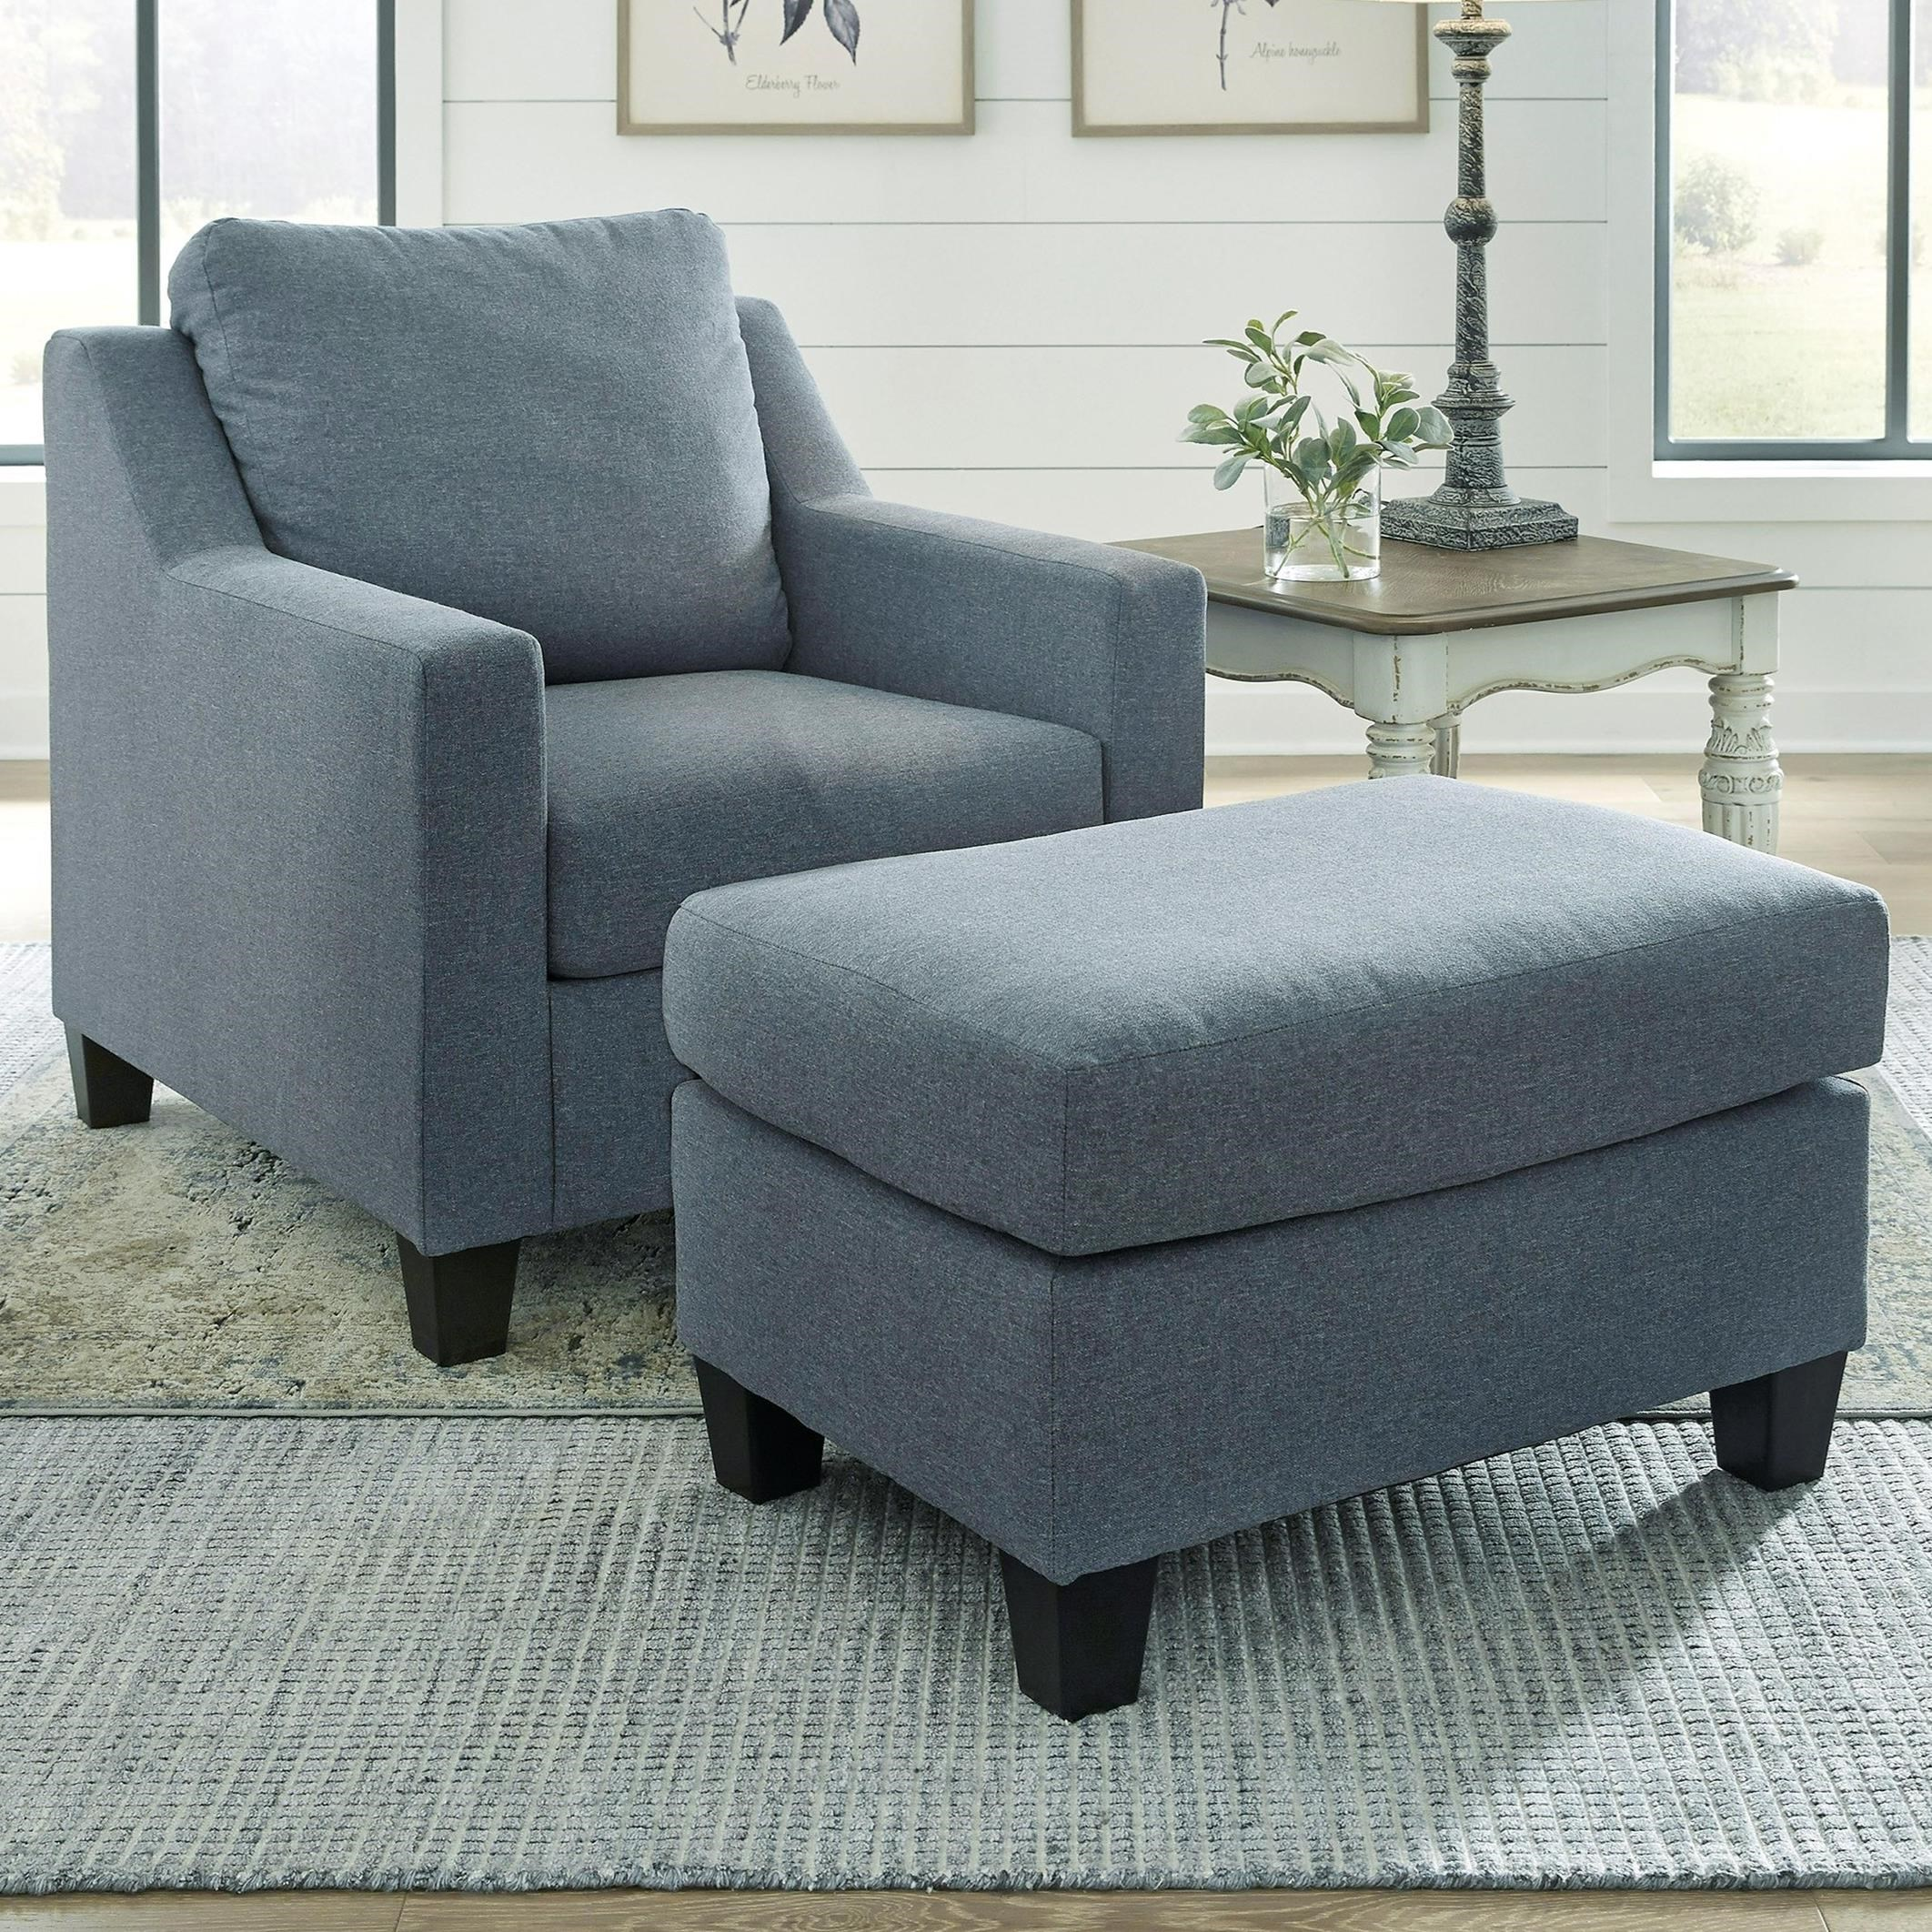 Lemly Chair & Ottoman by Benchcraft at Northeast Factory Direct